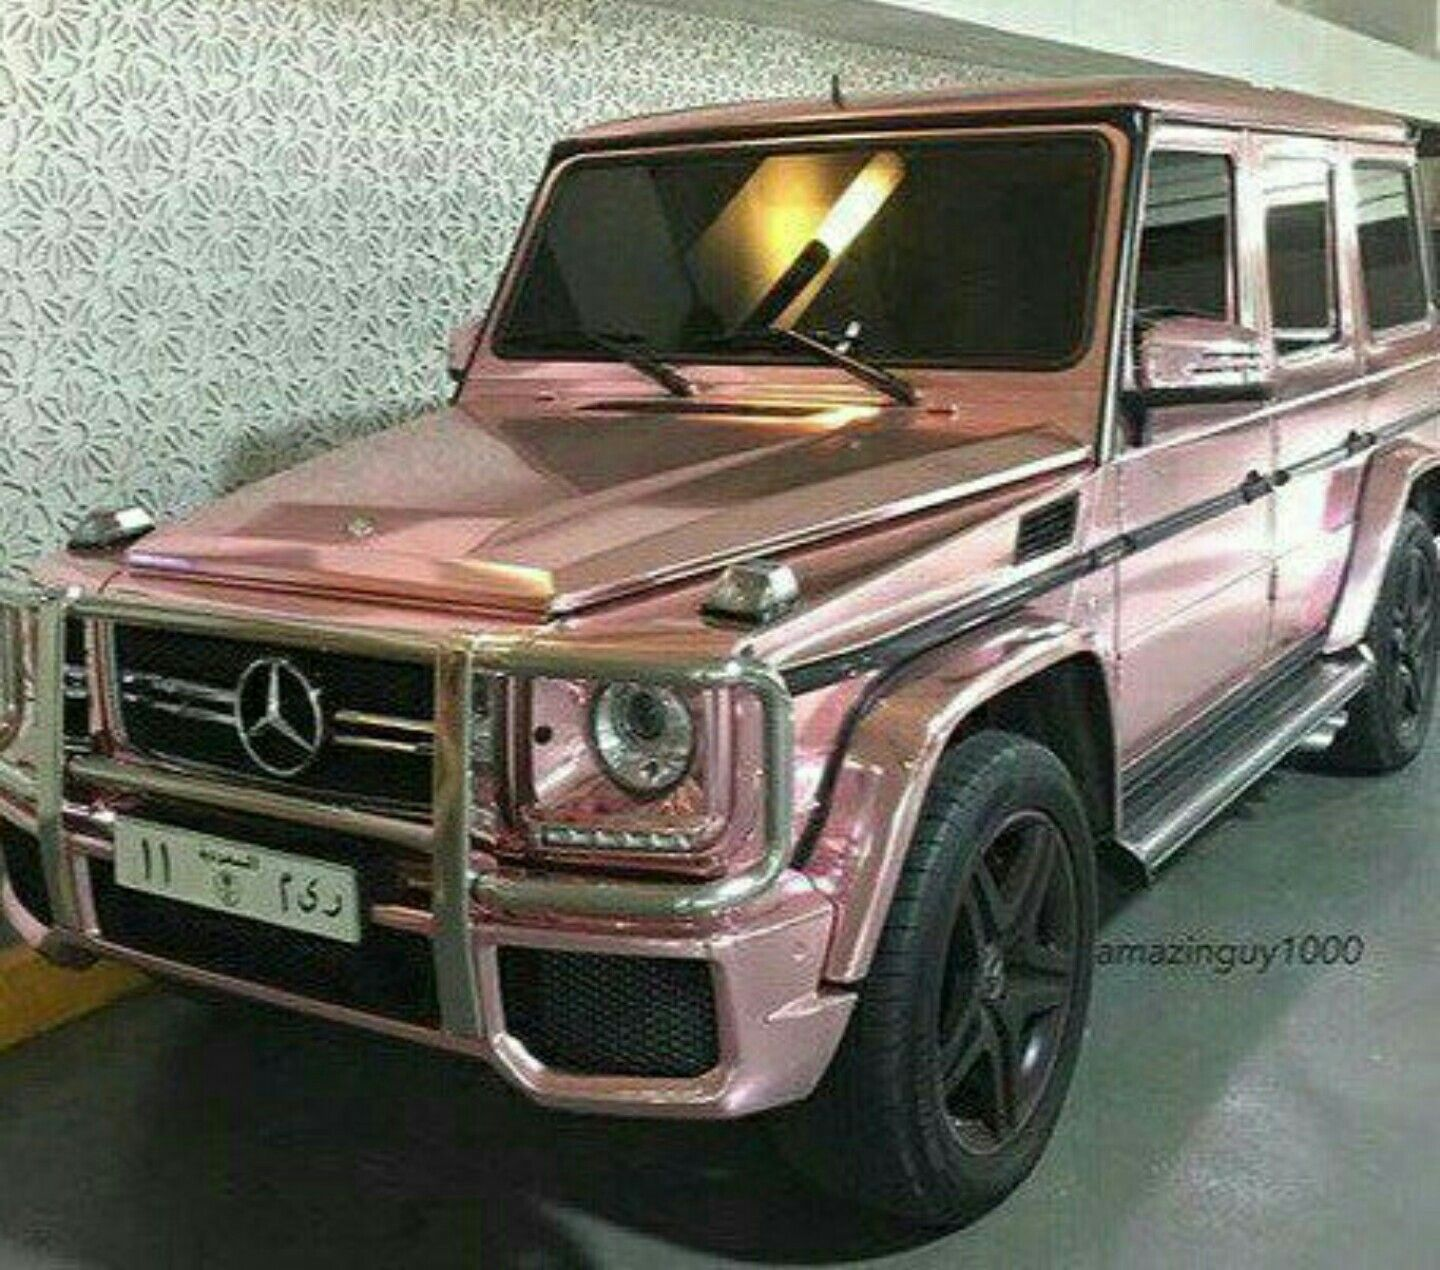 Mercedes G Wagon Rose Gold Car Pink Point Of View Used Luxury